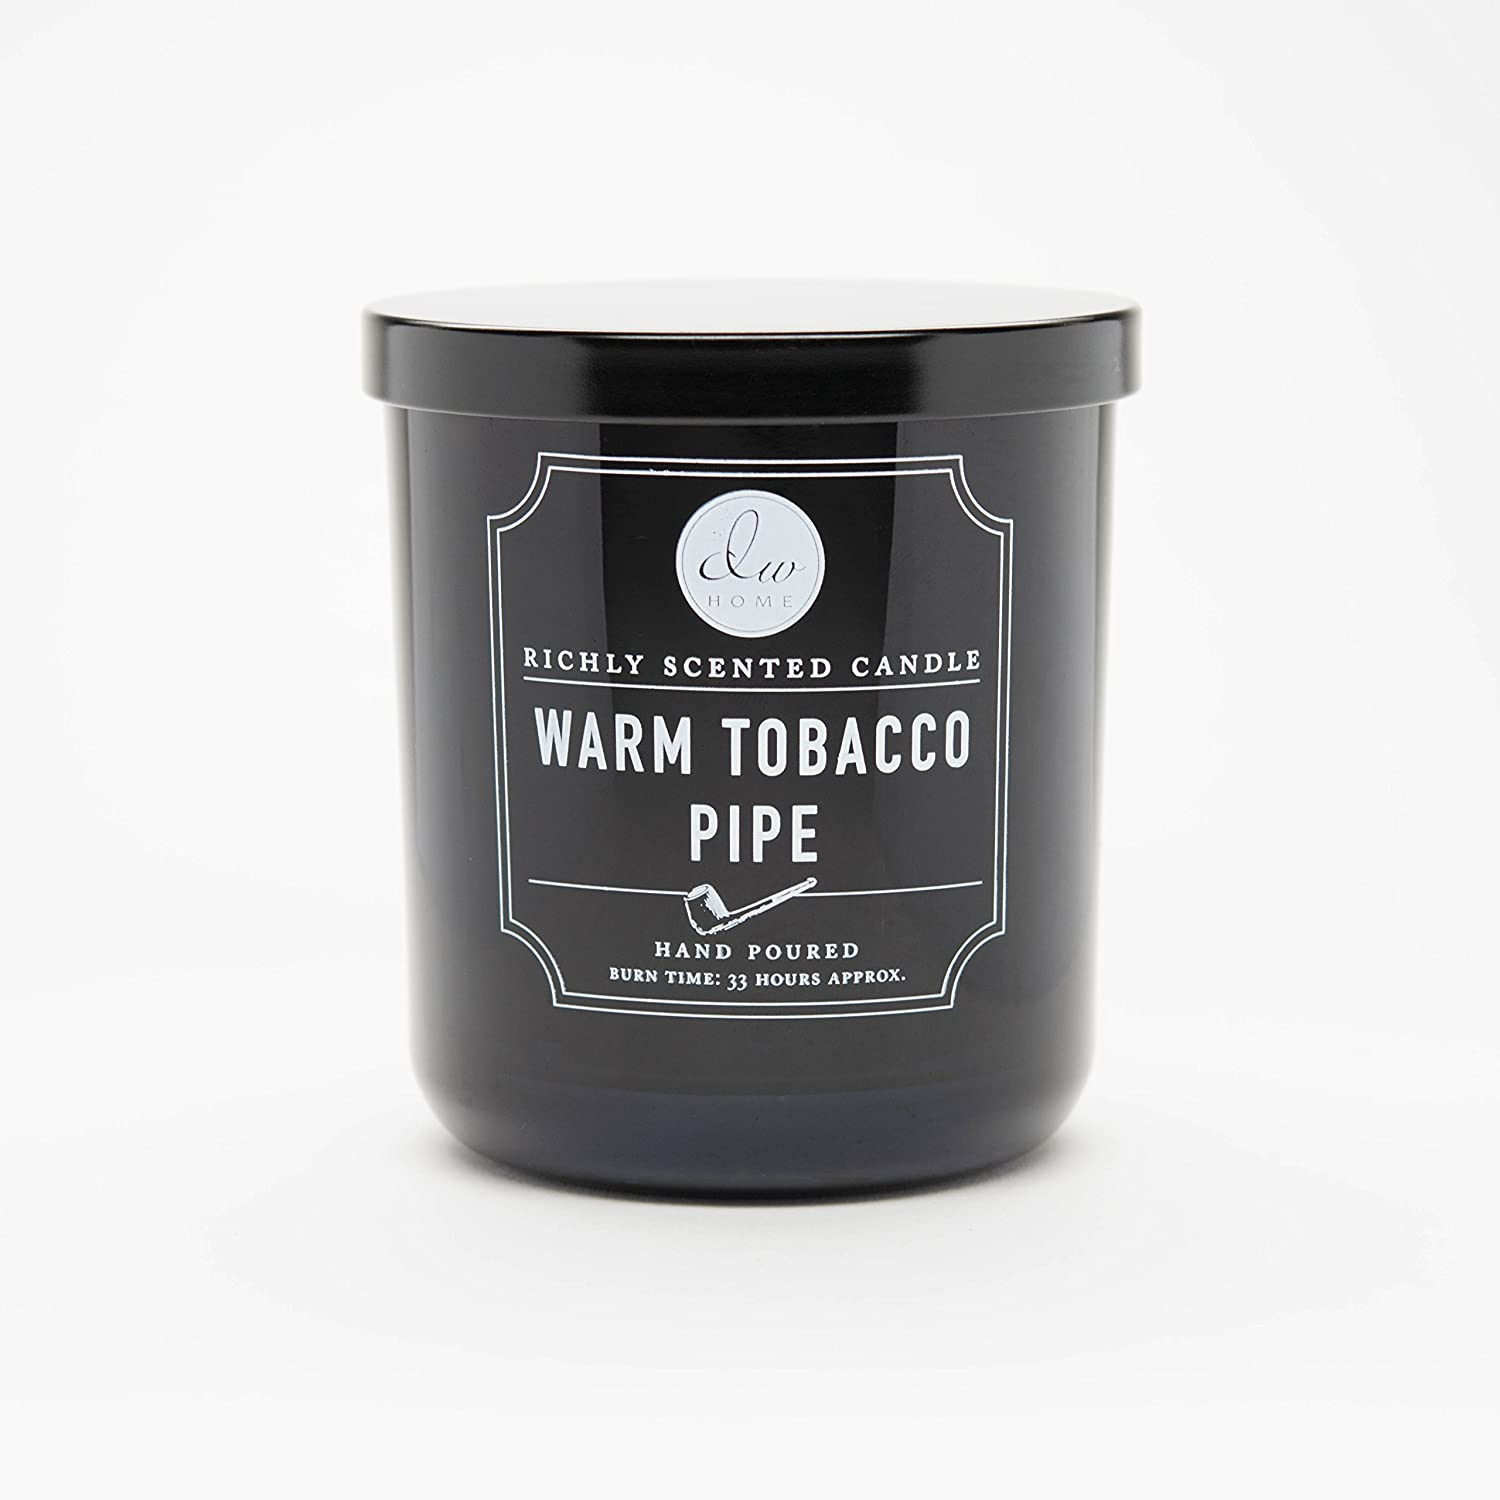 DW Home Medium Single Wick Candle, Warm Tobacco Pipe,Black,10.35 Oz.